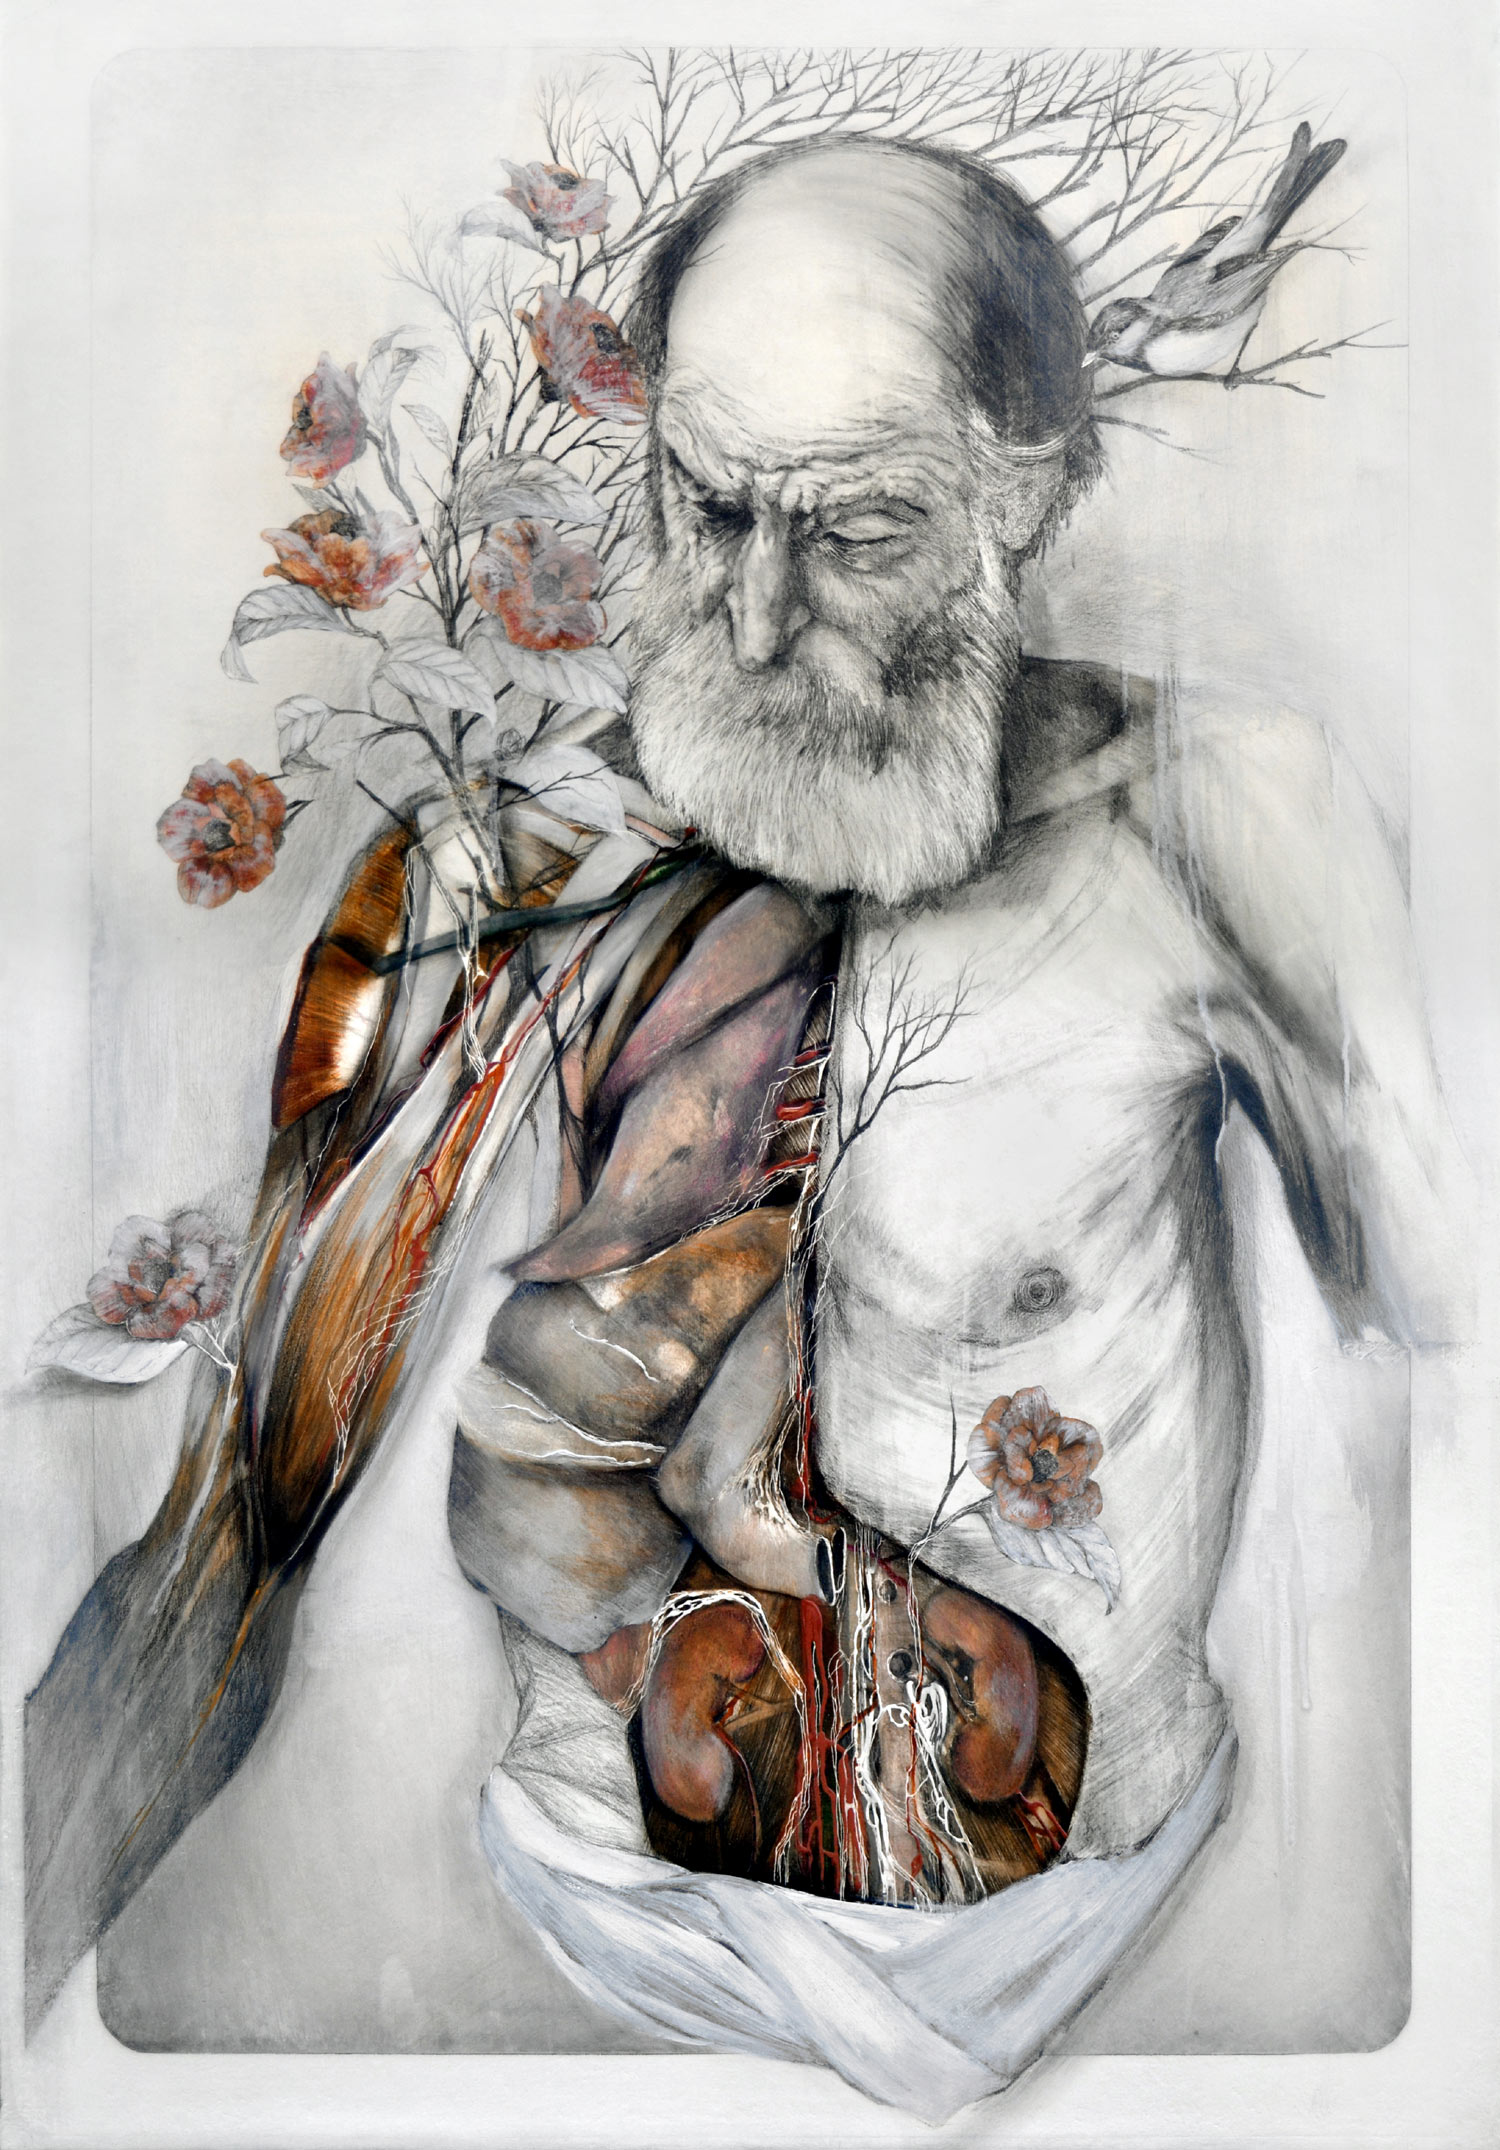 Plants Grow from Human Anatomy in Poetic Paintings of Decaying ...